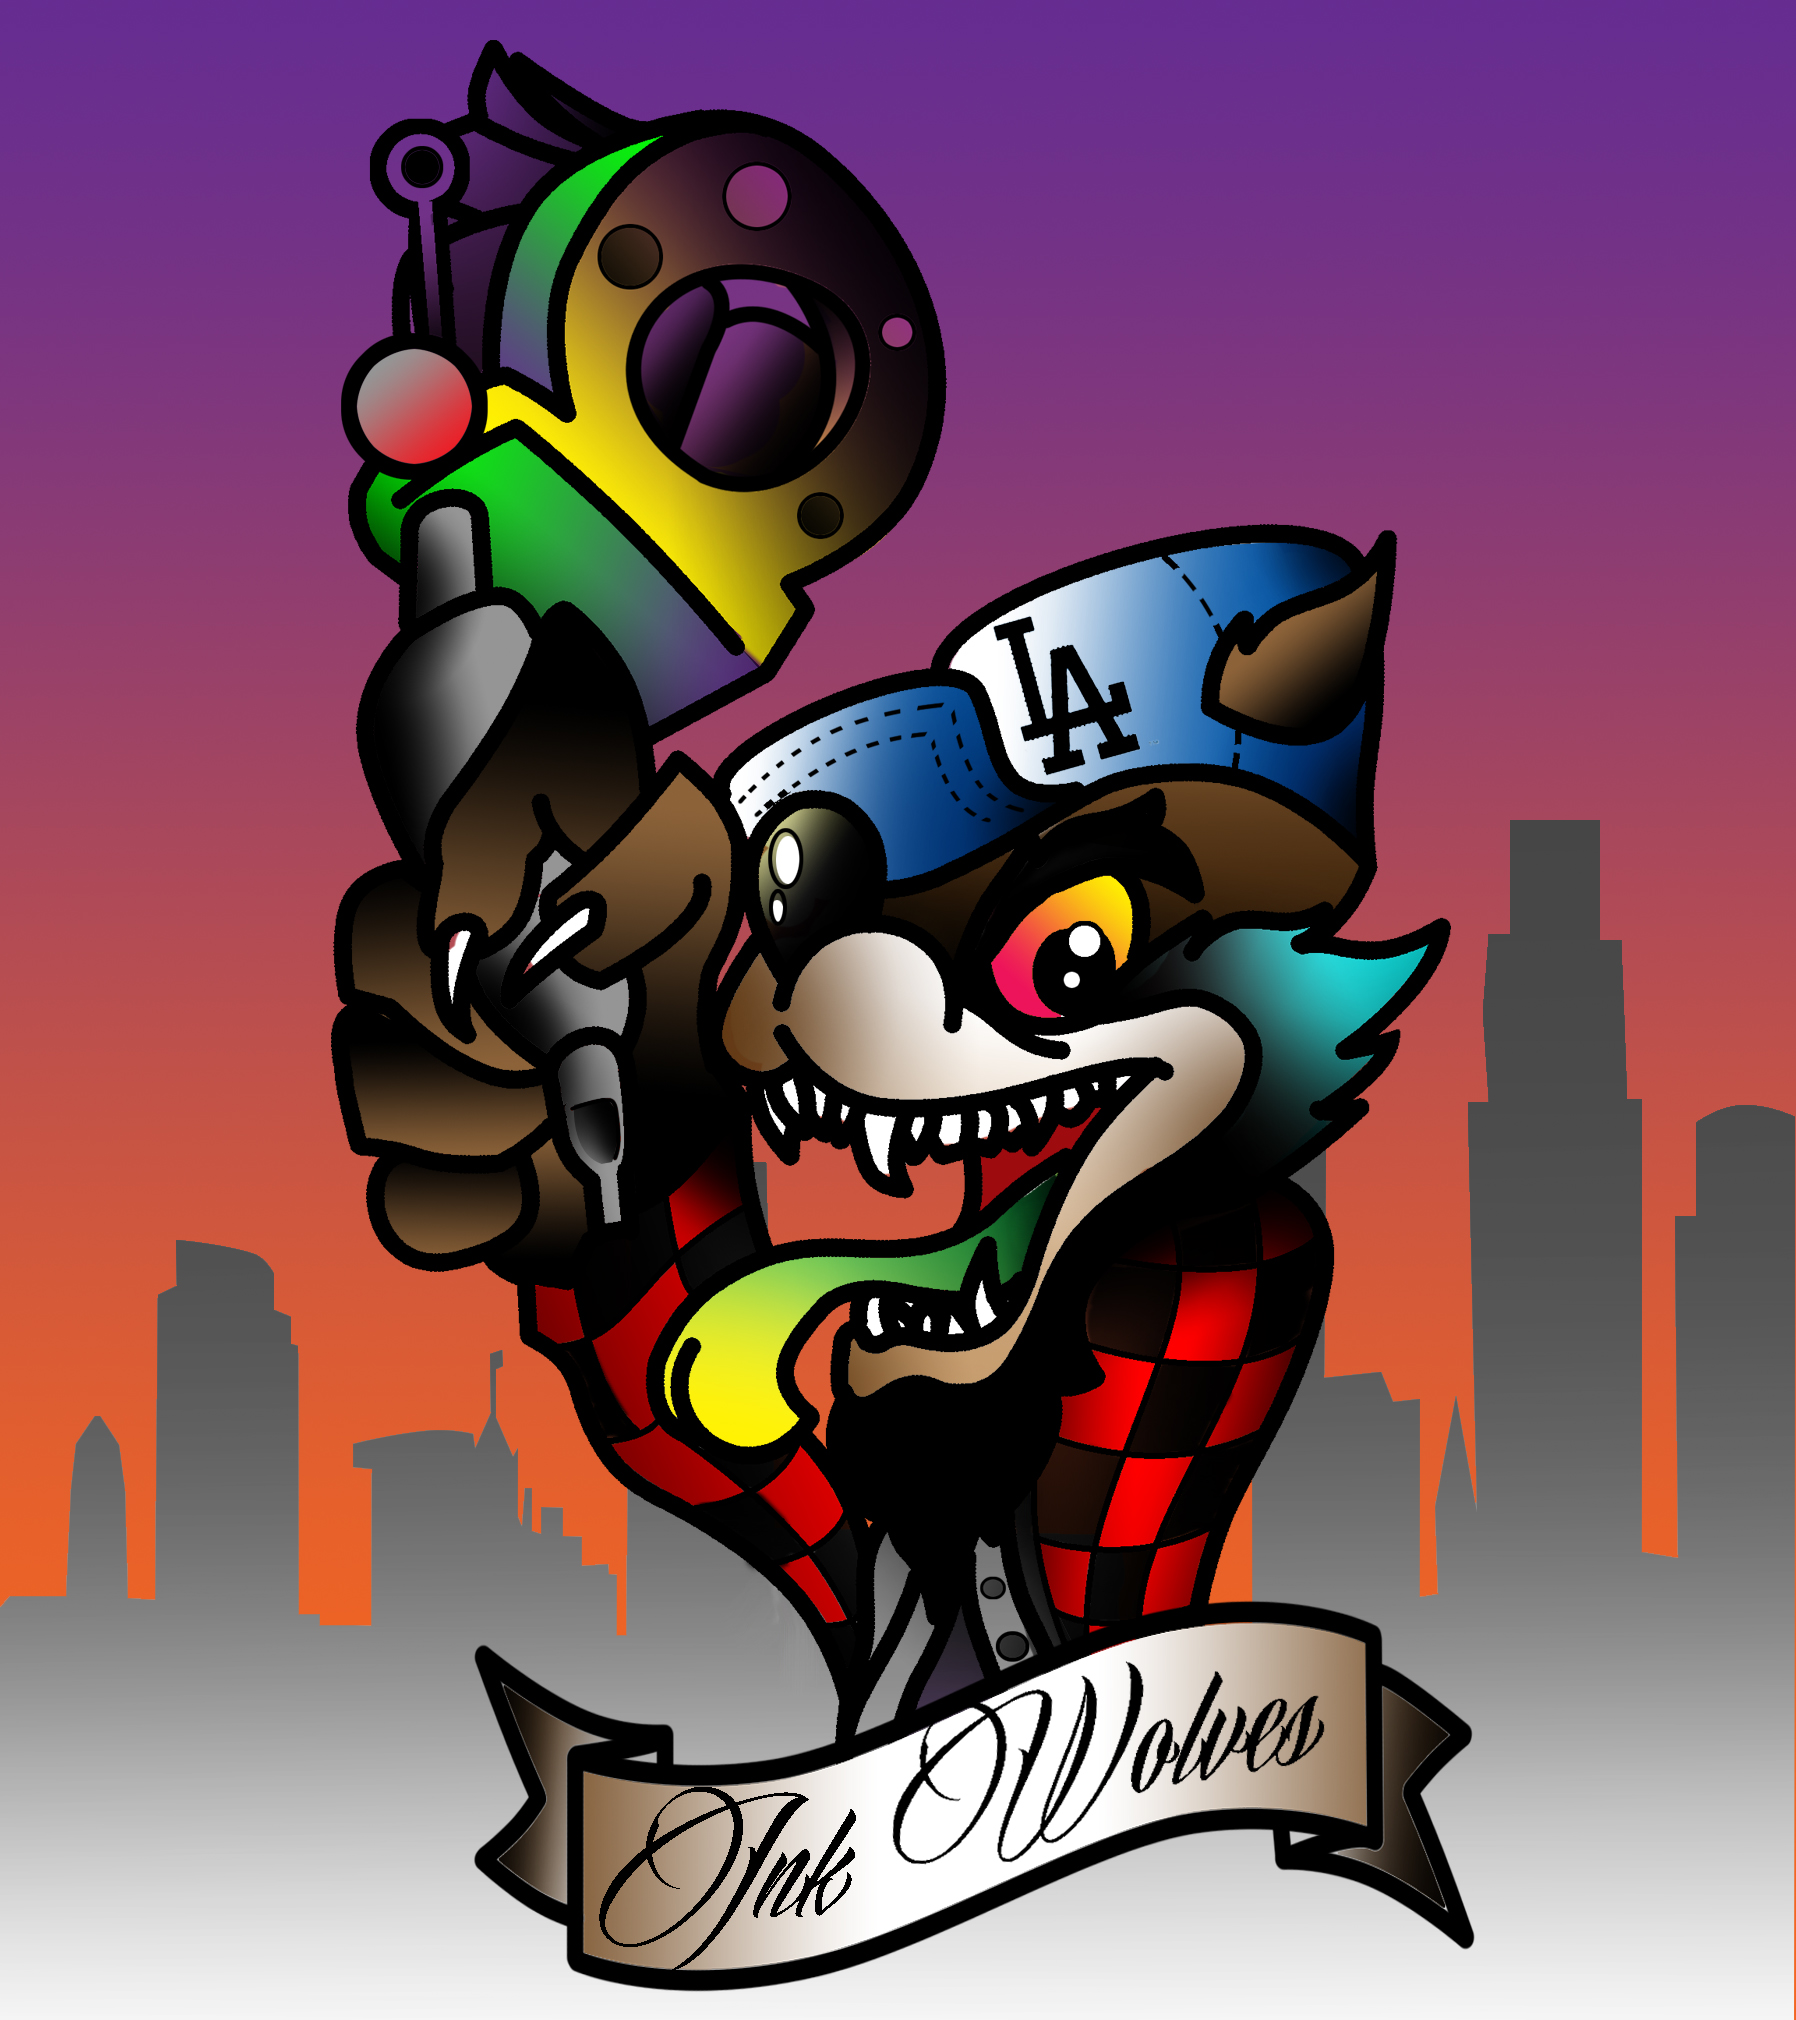 Tattoo & Piercing Shop Tampa Fl   United States   Ink Wolves Tattoos